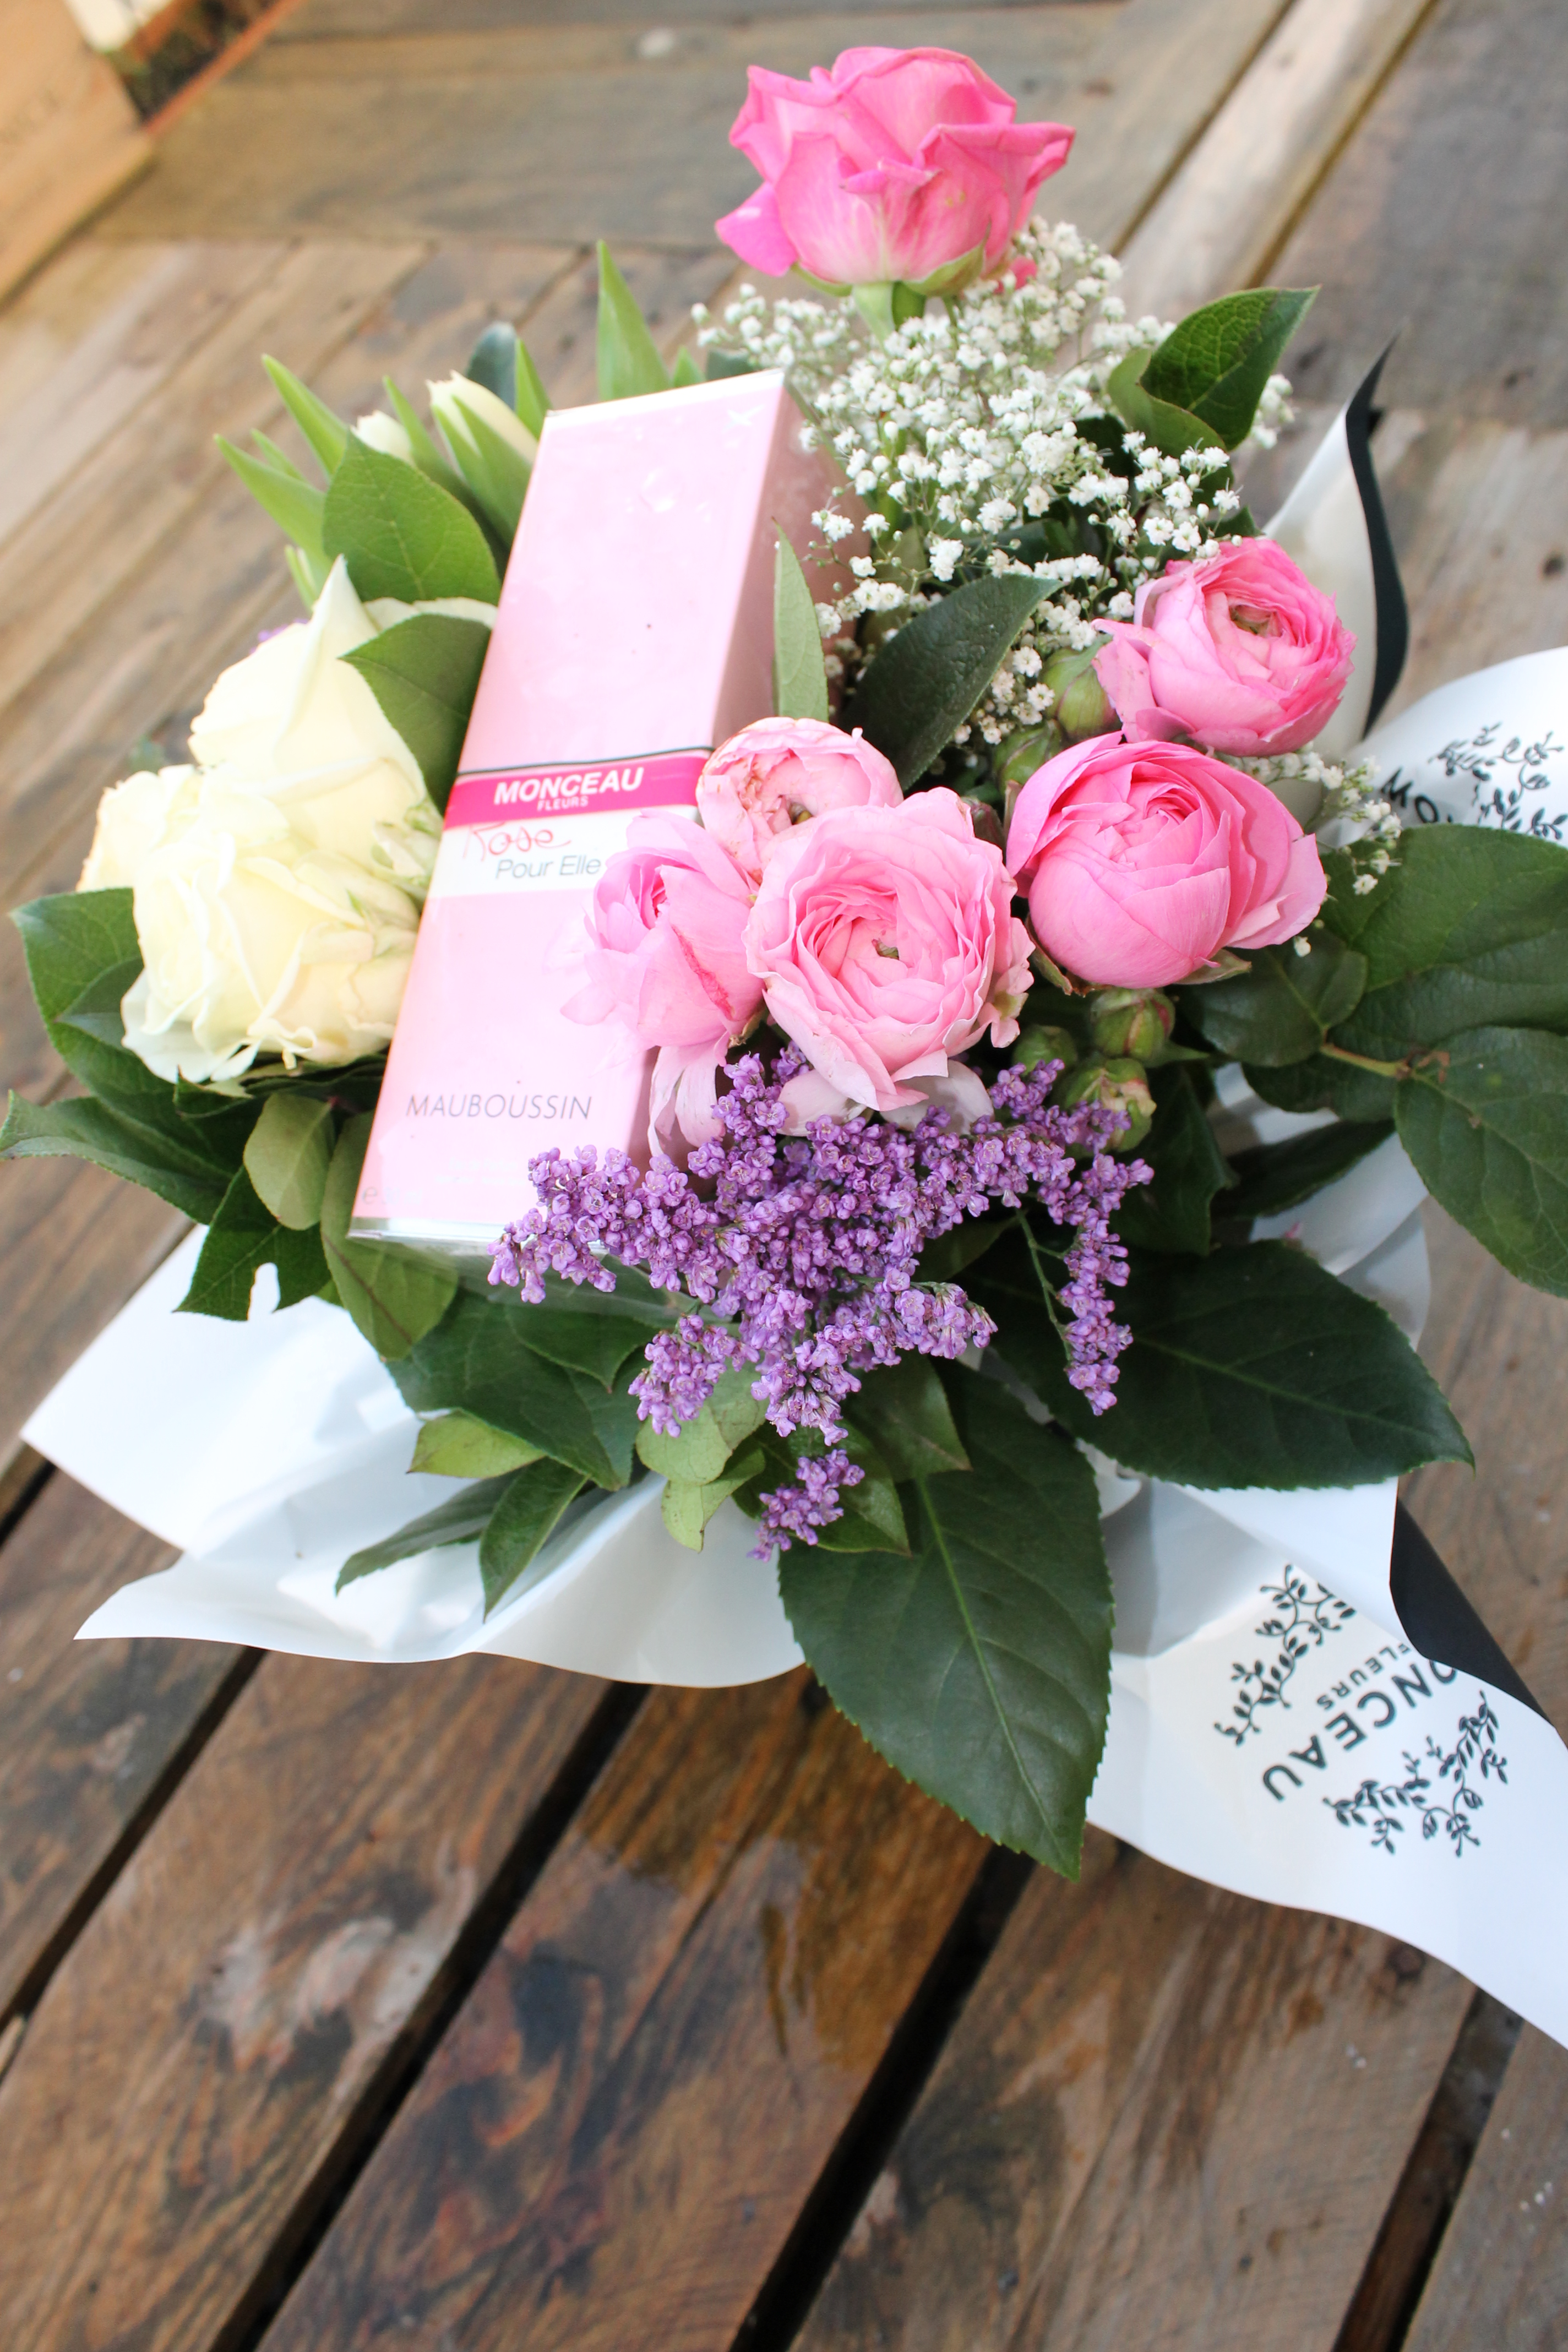 Le bouquet parfait pour la saint valentin rise and shine for La saint parfait